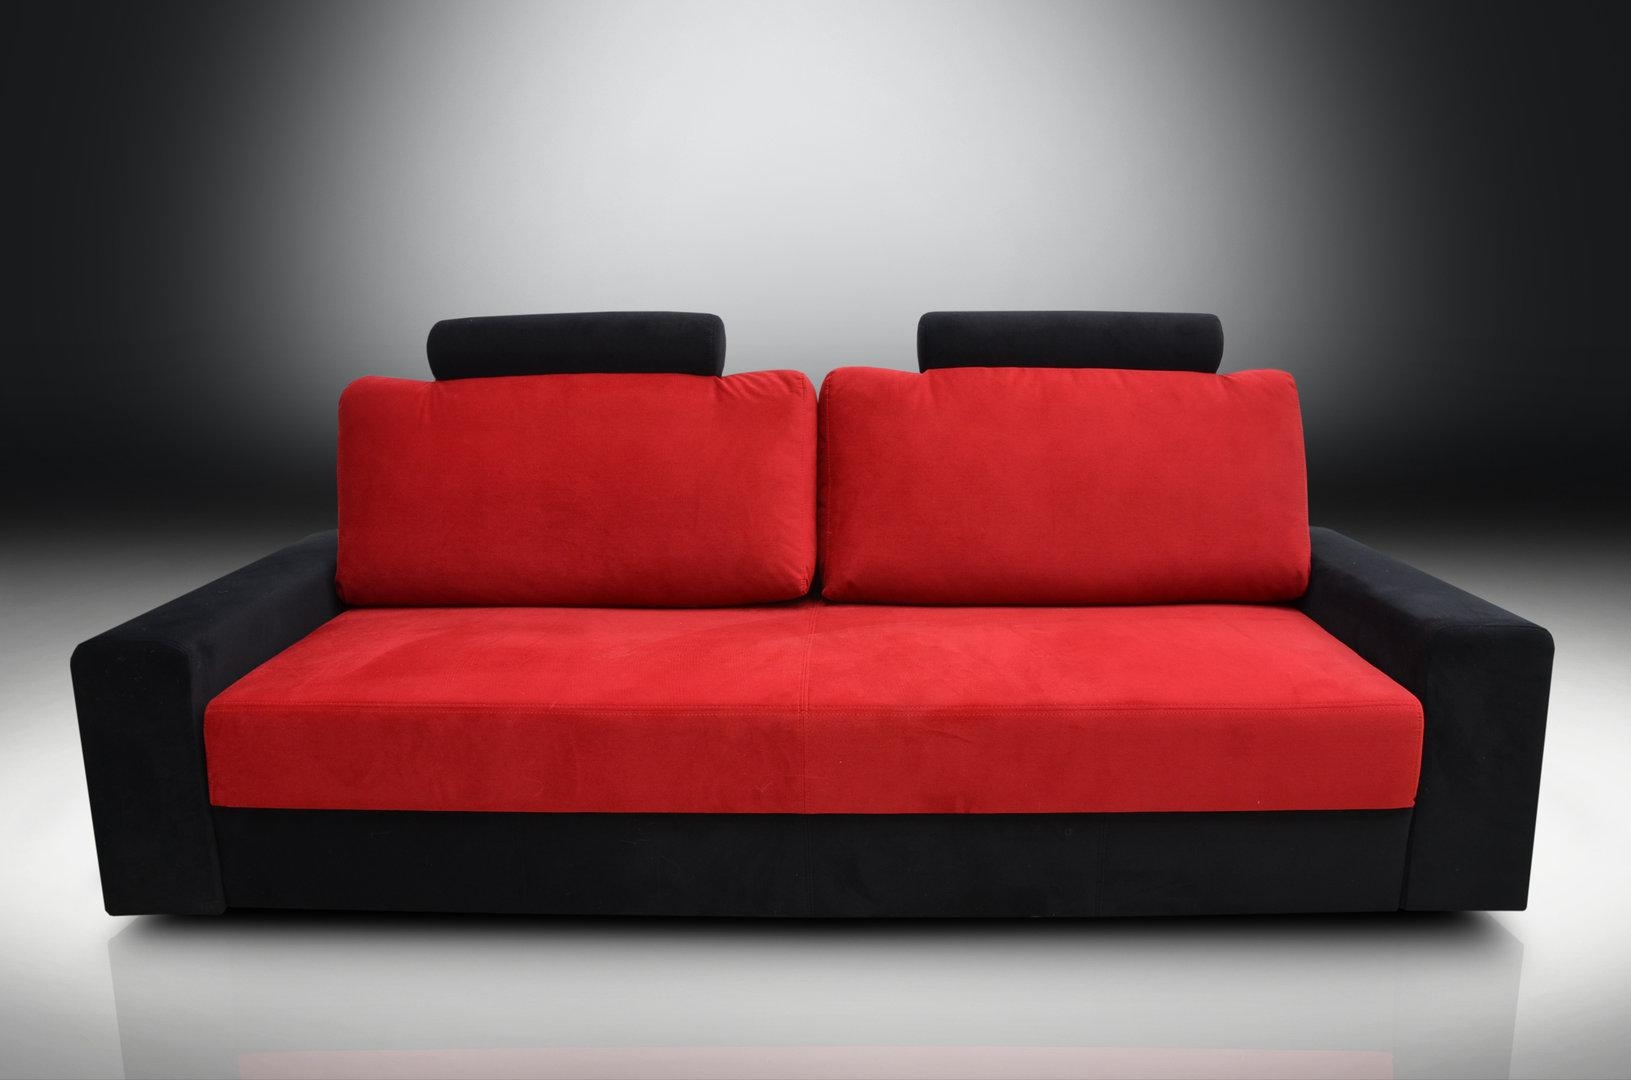 Superb Sofa Bed, Good Quality, Good Price, Fast Full Services Delivery Within Sofa Red And Black (Image 18 of 20)